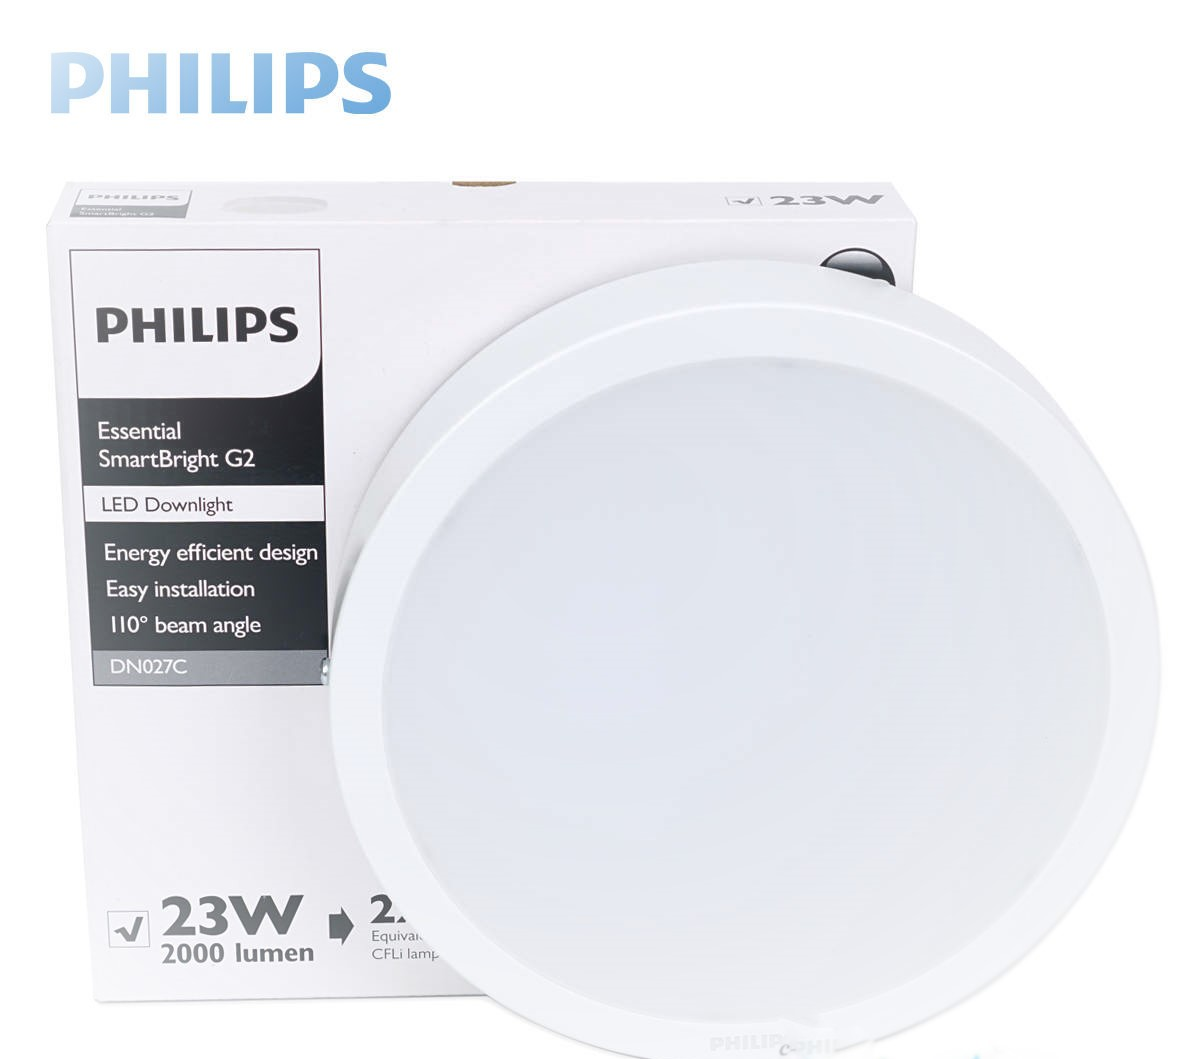 Đèn ốp trần LED PHILIPS DN027C LED20 23W